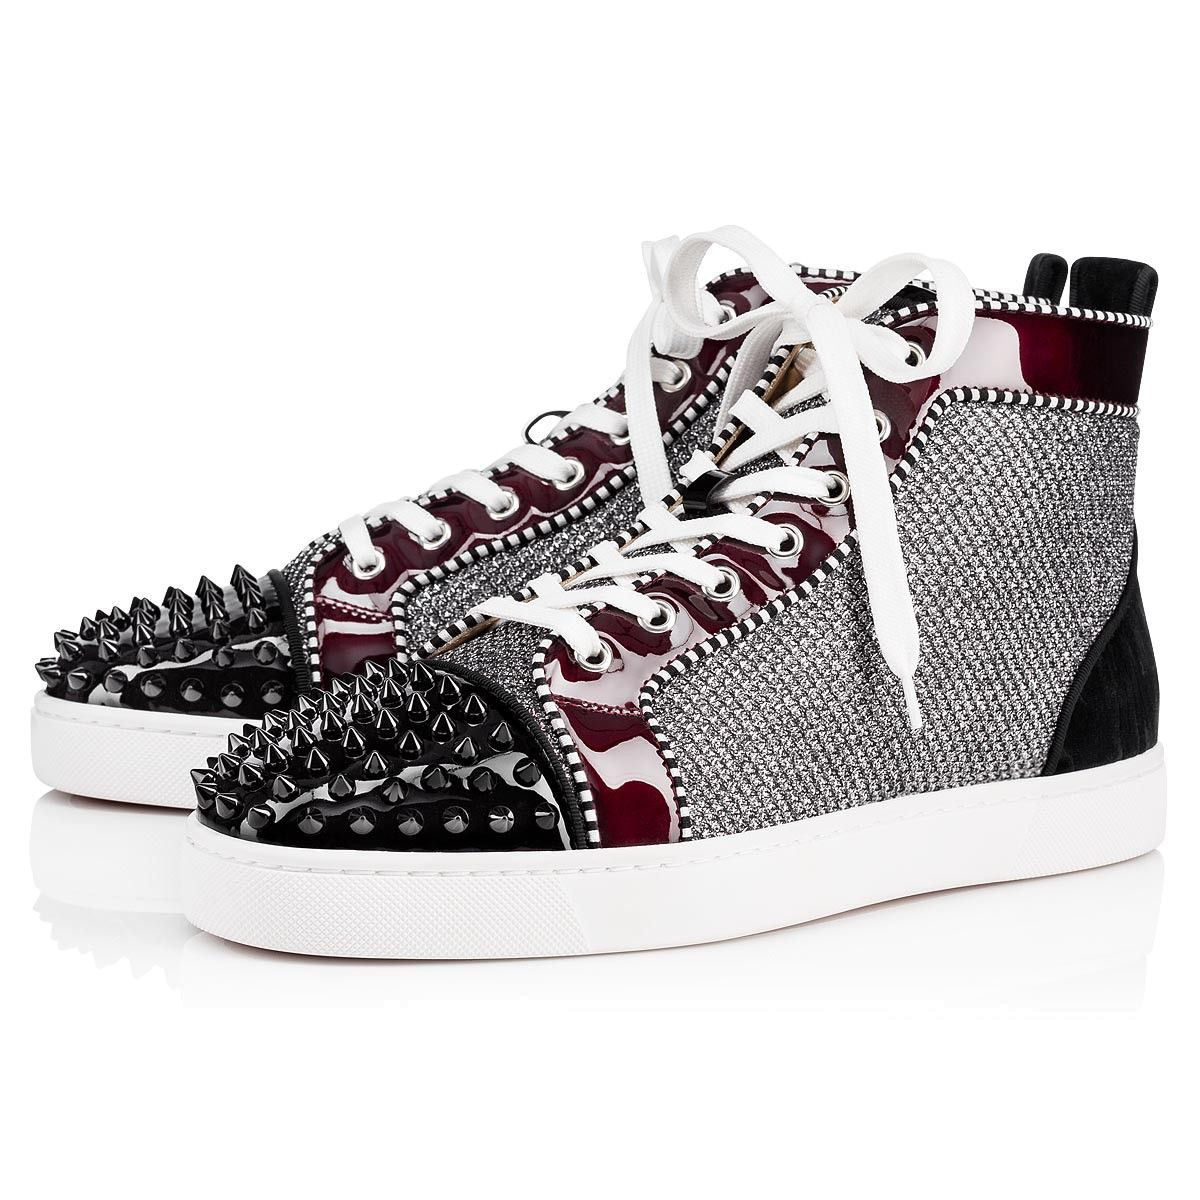 c8798e63a9f CHRISTIAN LOUBOUTIN Lou Spikes Orlato Men s Flat.  christianlouboutin  shoes